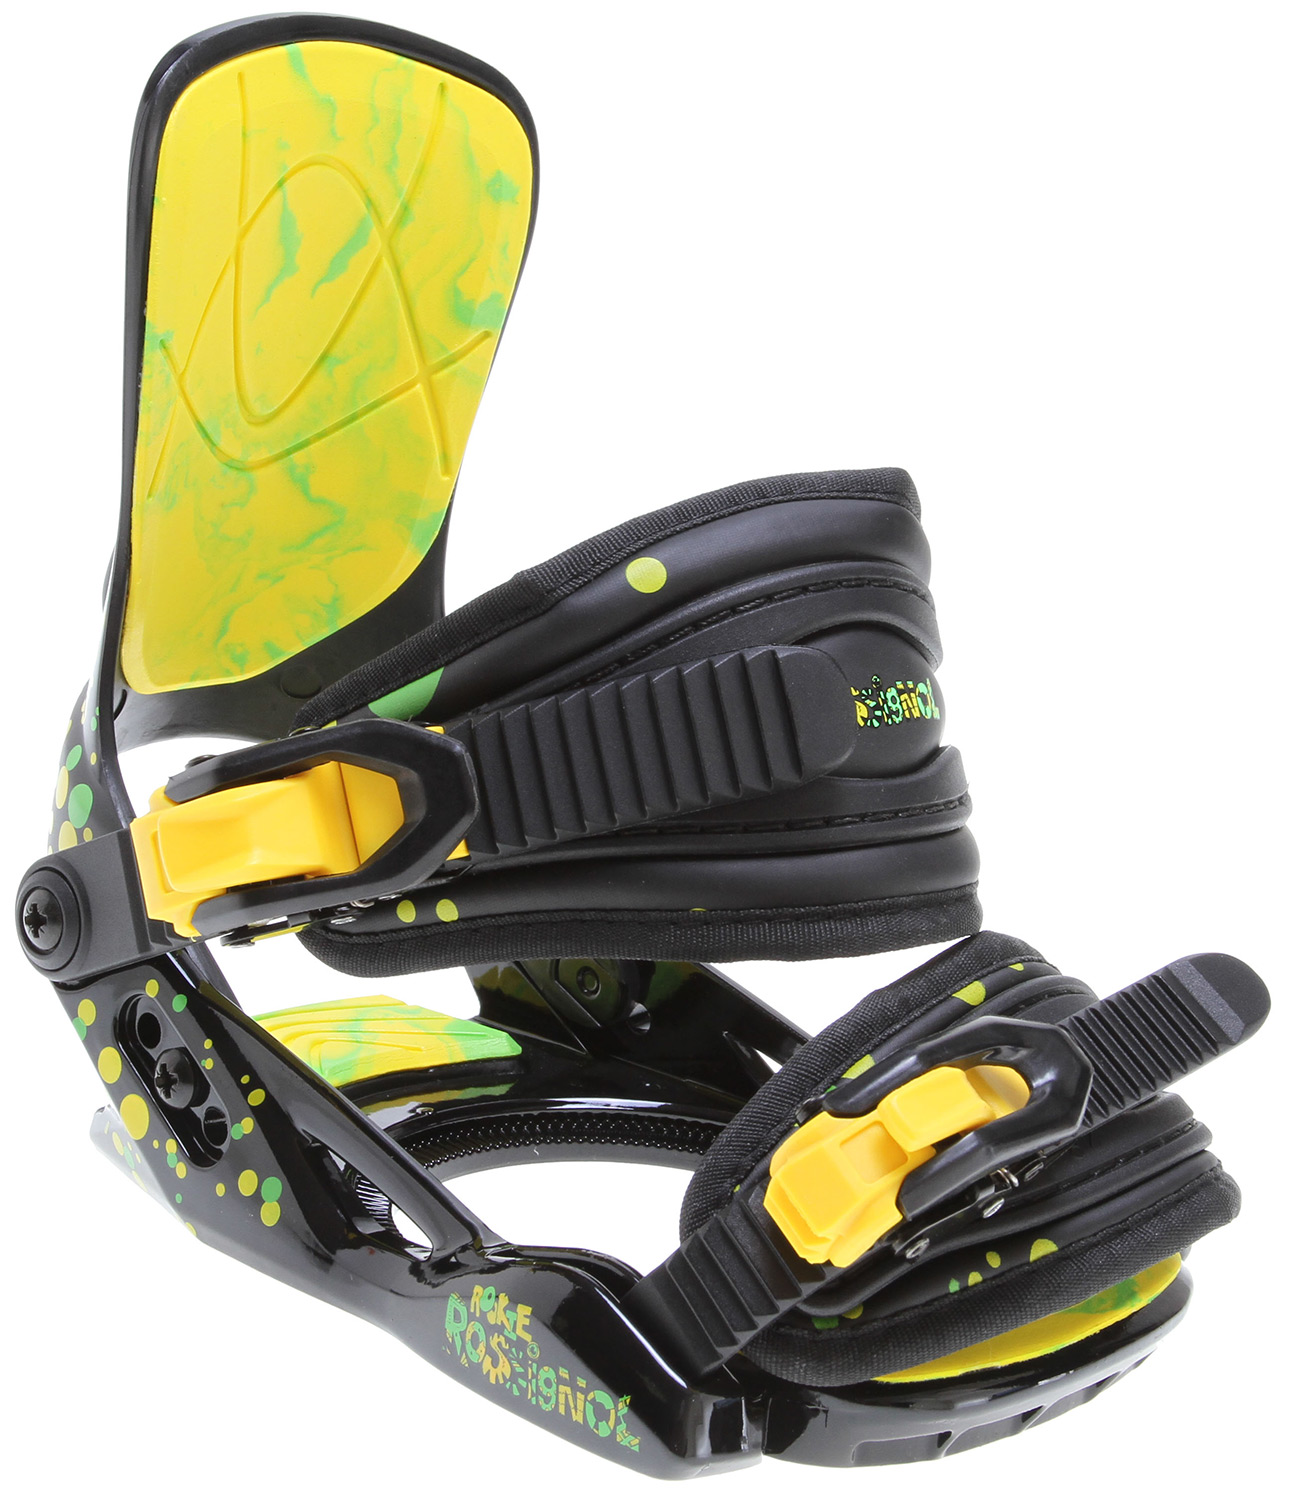 Snowboard Like the rider they are built for the Rookie is small in size but packs big-time swagger. The Rookie steps up to the plate with all the performance and comfort little groms need to take their riding to the pros.* NHC Baseplate * Free Back Highback * 2D Rookie Straps * EVA Footbed - $54.95